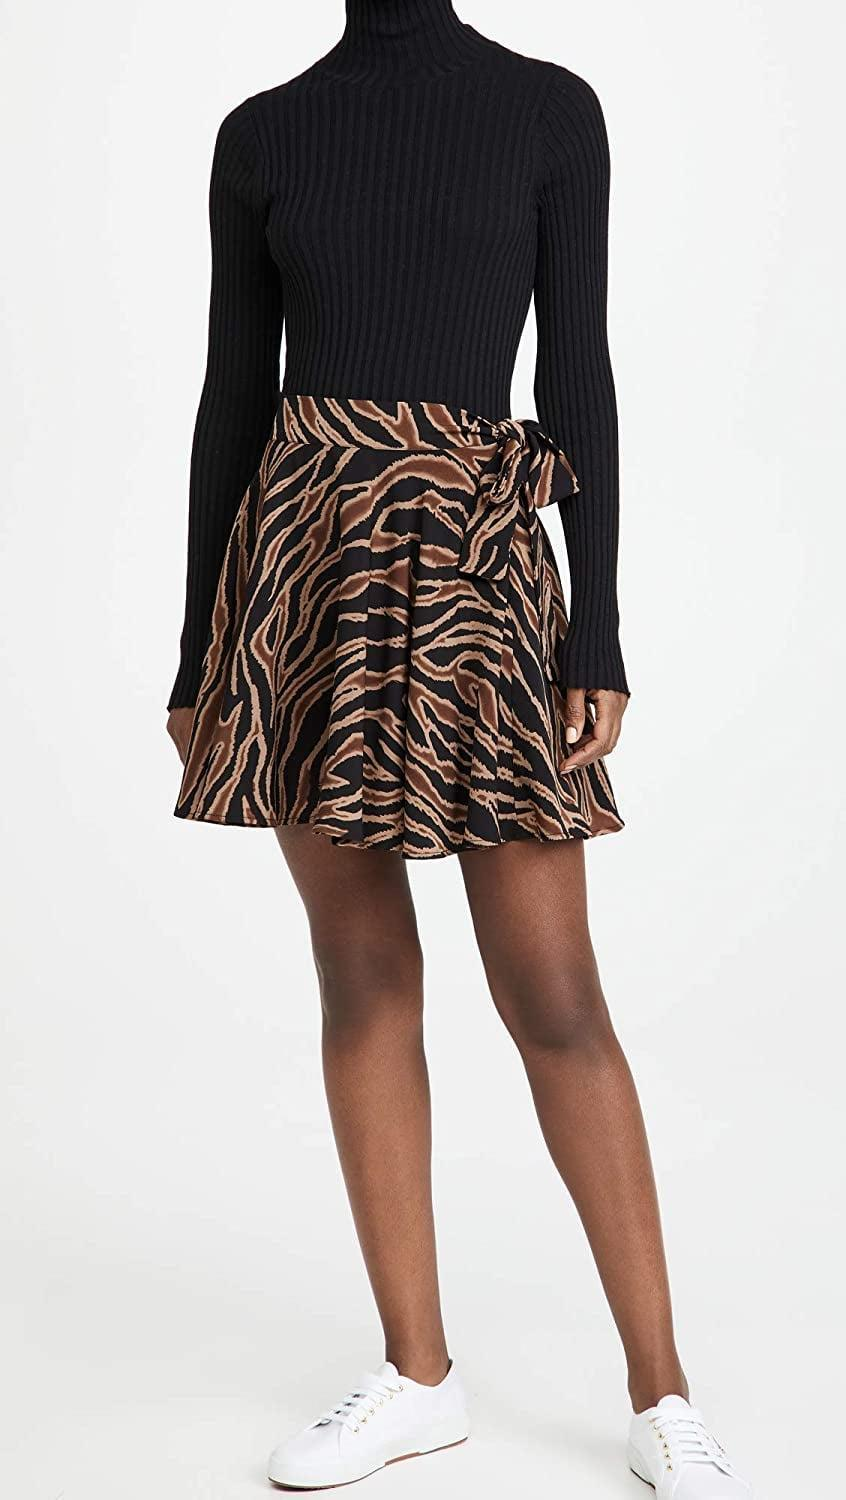 <p>Style this <span>BB DAKOTA Swing of Things Skirt</span> ($47-$69) with your favorite sneakers and tee.</p>